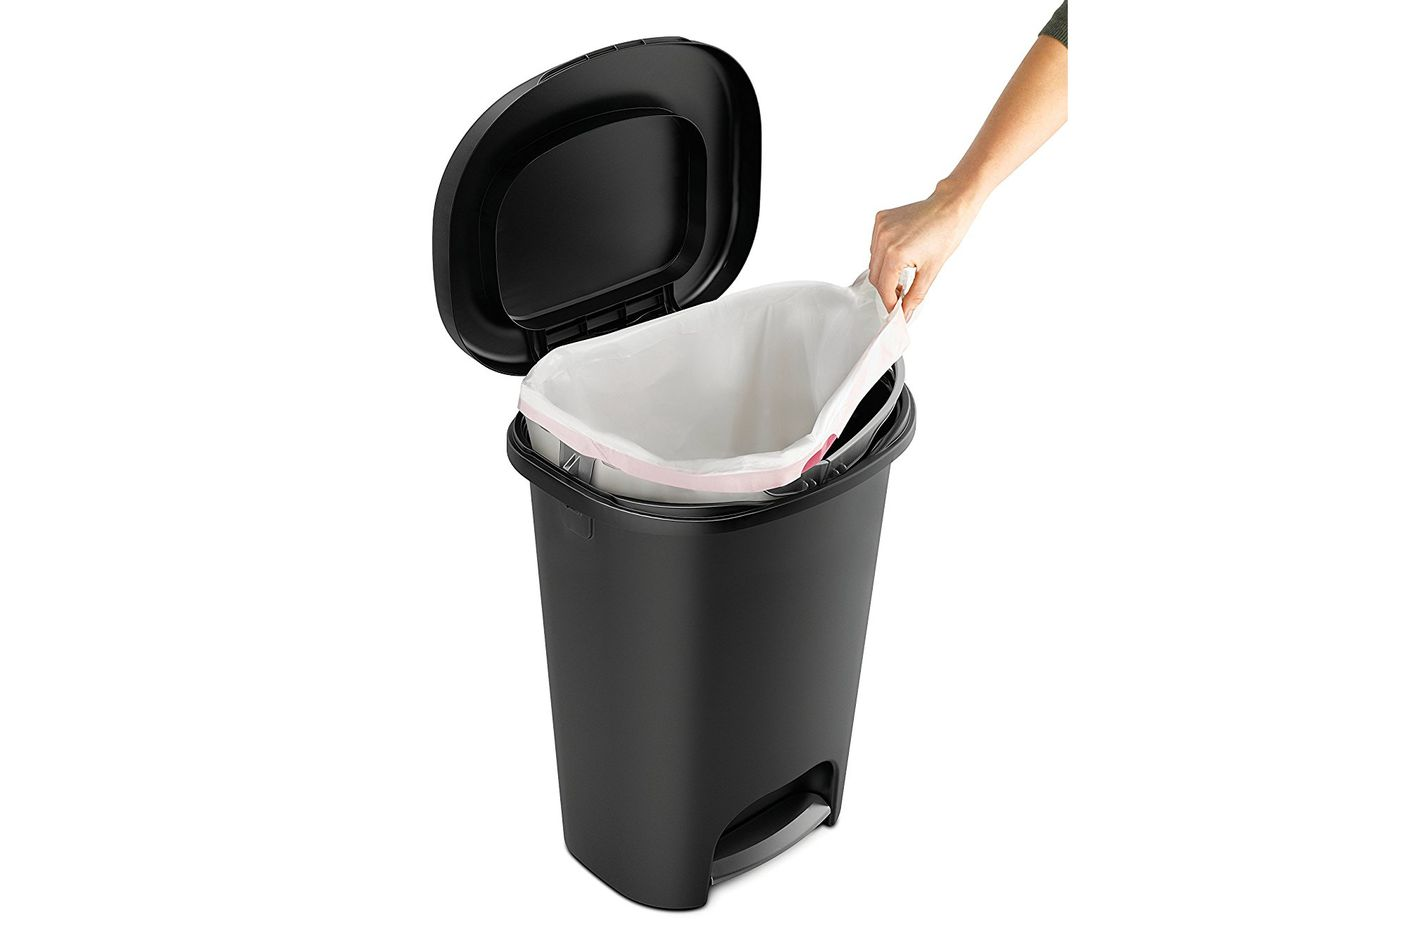 Rubbermaid Step-On Wastebasket, 13 Gallon — Black